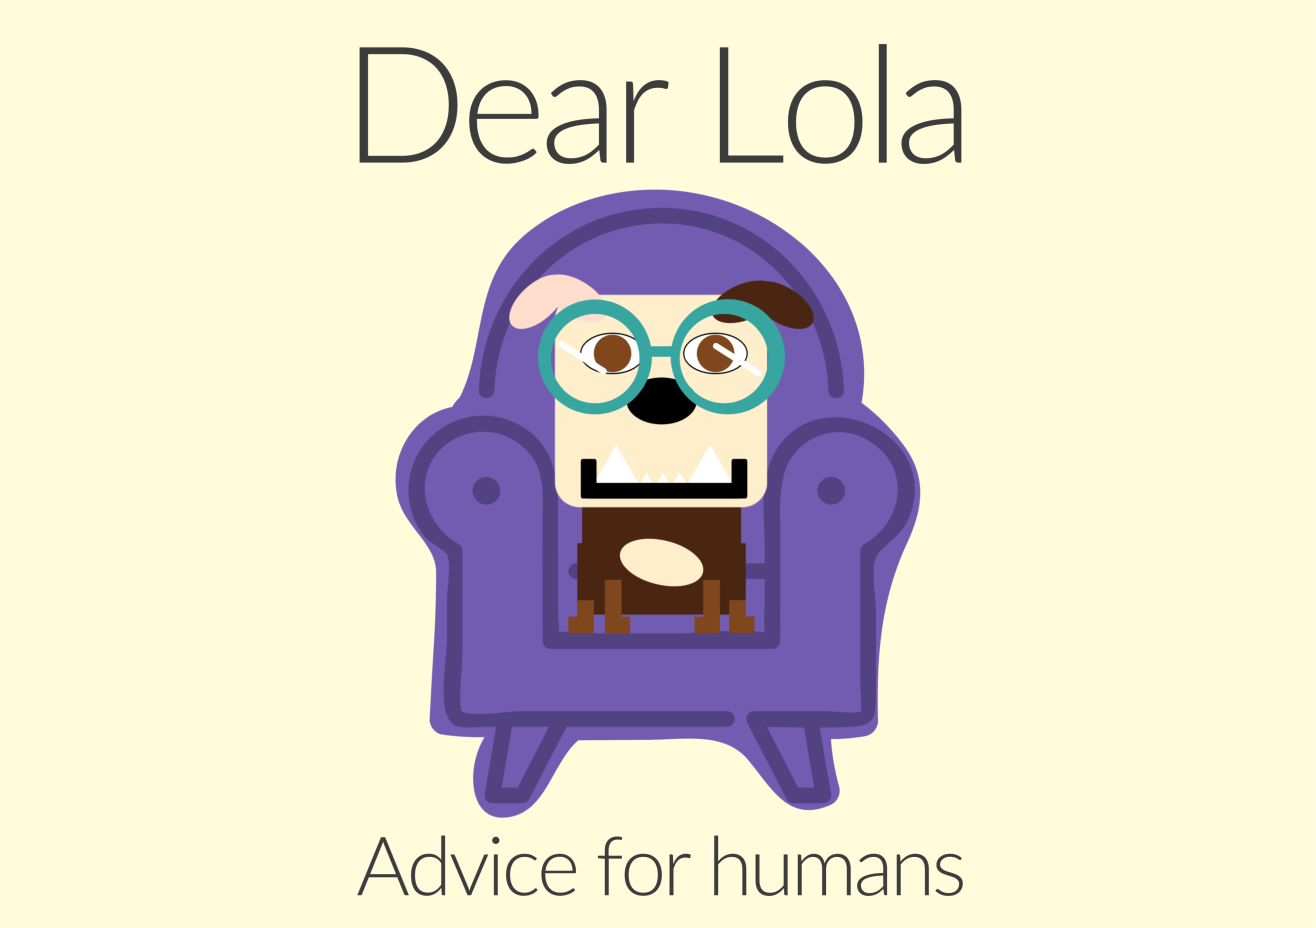 A cartoon rendering of Lola sitting in a chair wearing oversized glasses.